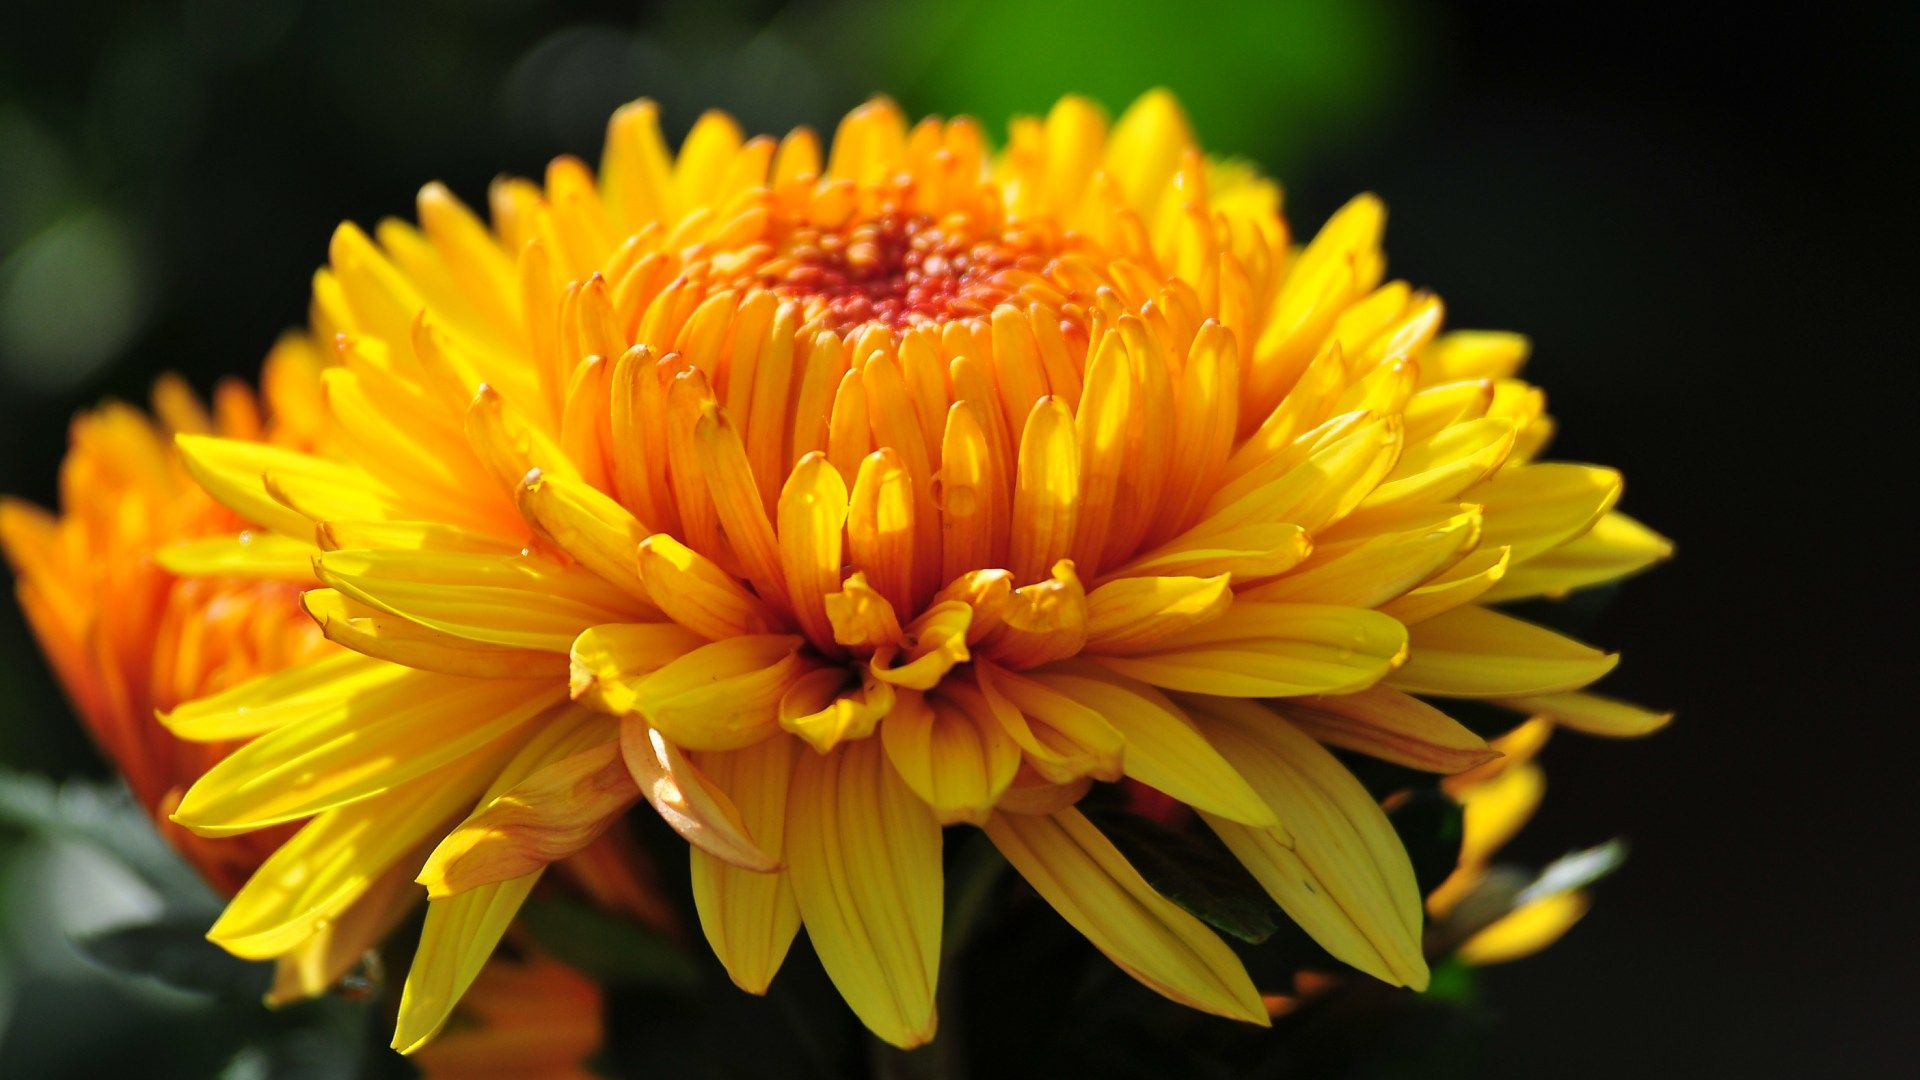 Lglimitlessdesign Contest Add Some Yellow Could Be My Favorite Color There Is A Reason Why Chrysanthemum Flower Pictures Flower Wallpaper Chrysanthemum